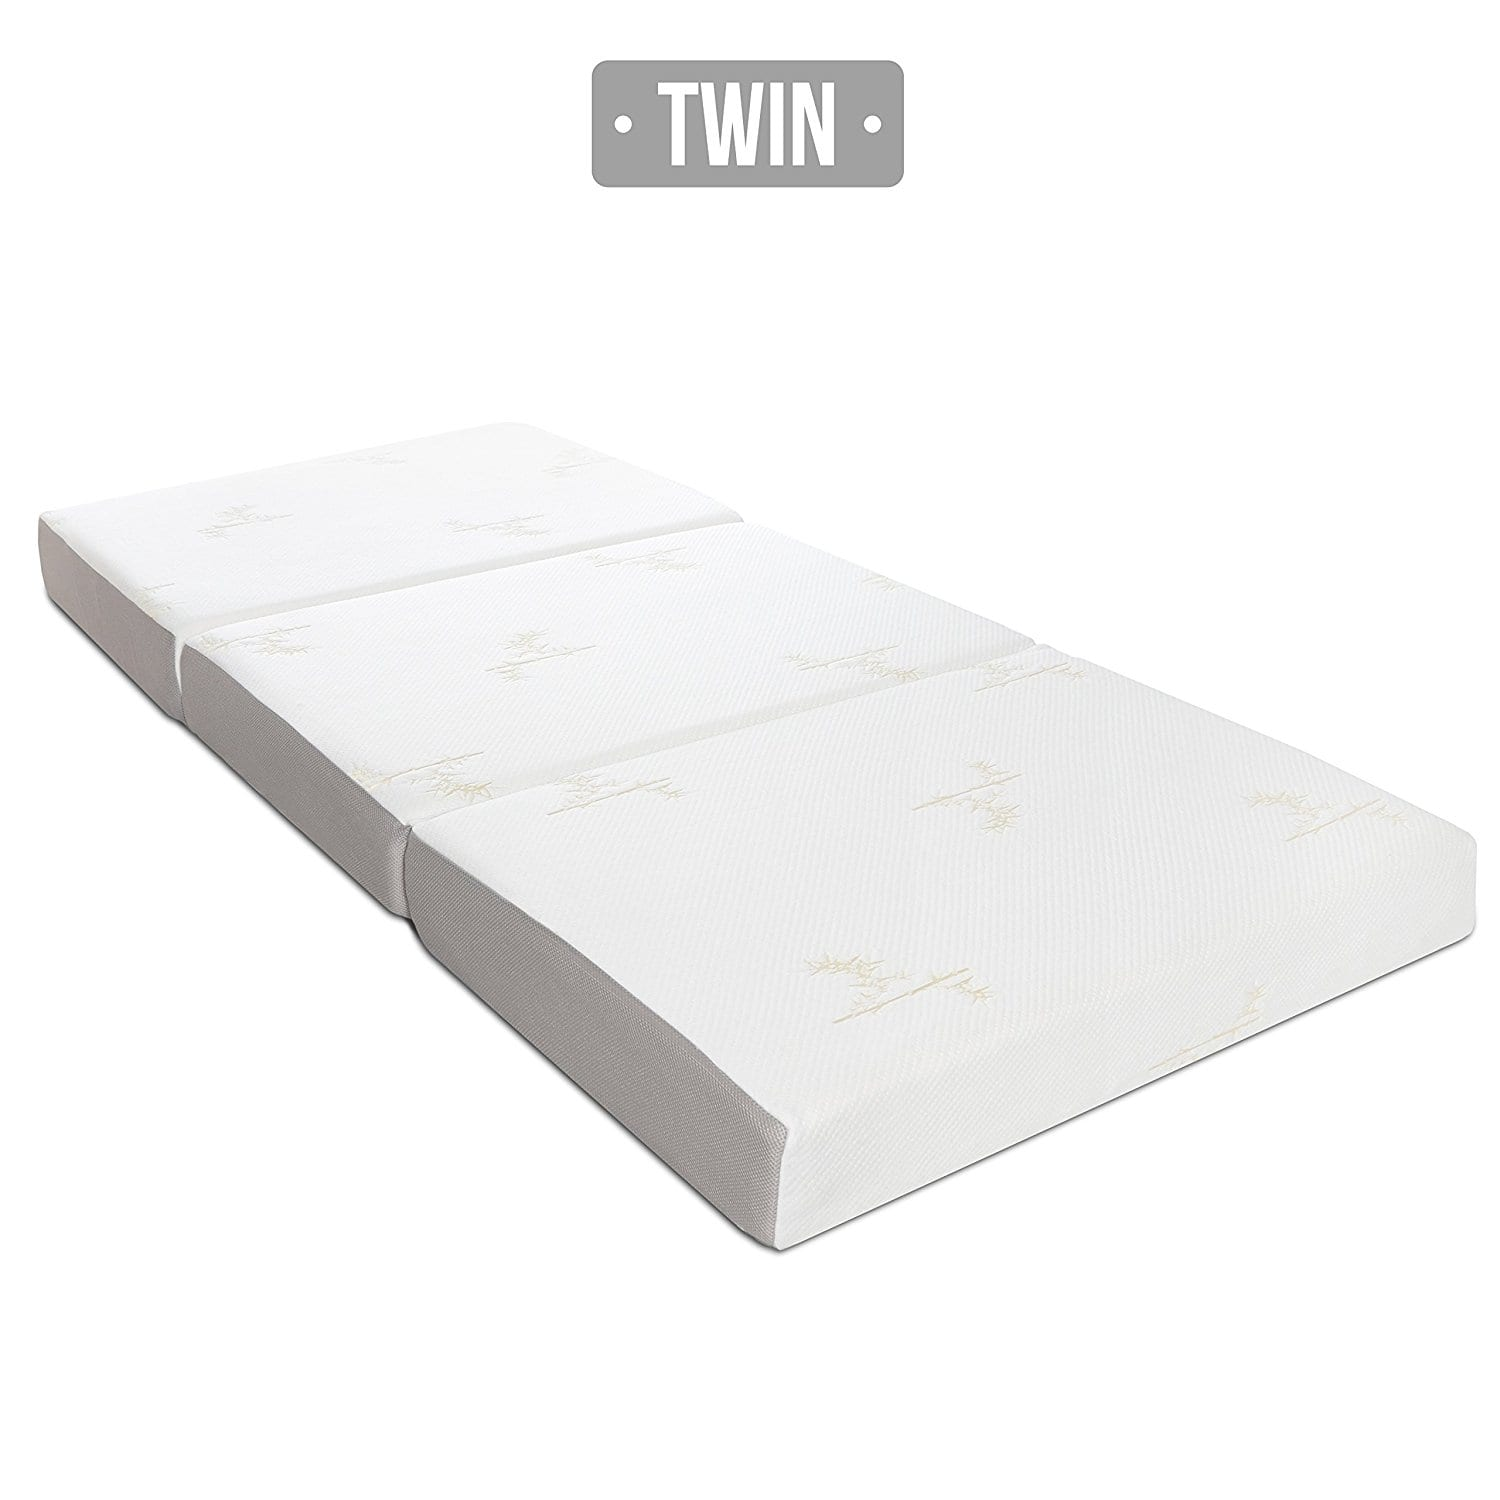 The Best Folding Mattress Brands And Buying Guide For 2019